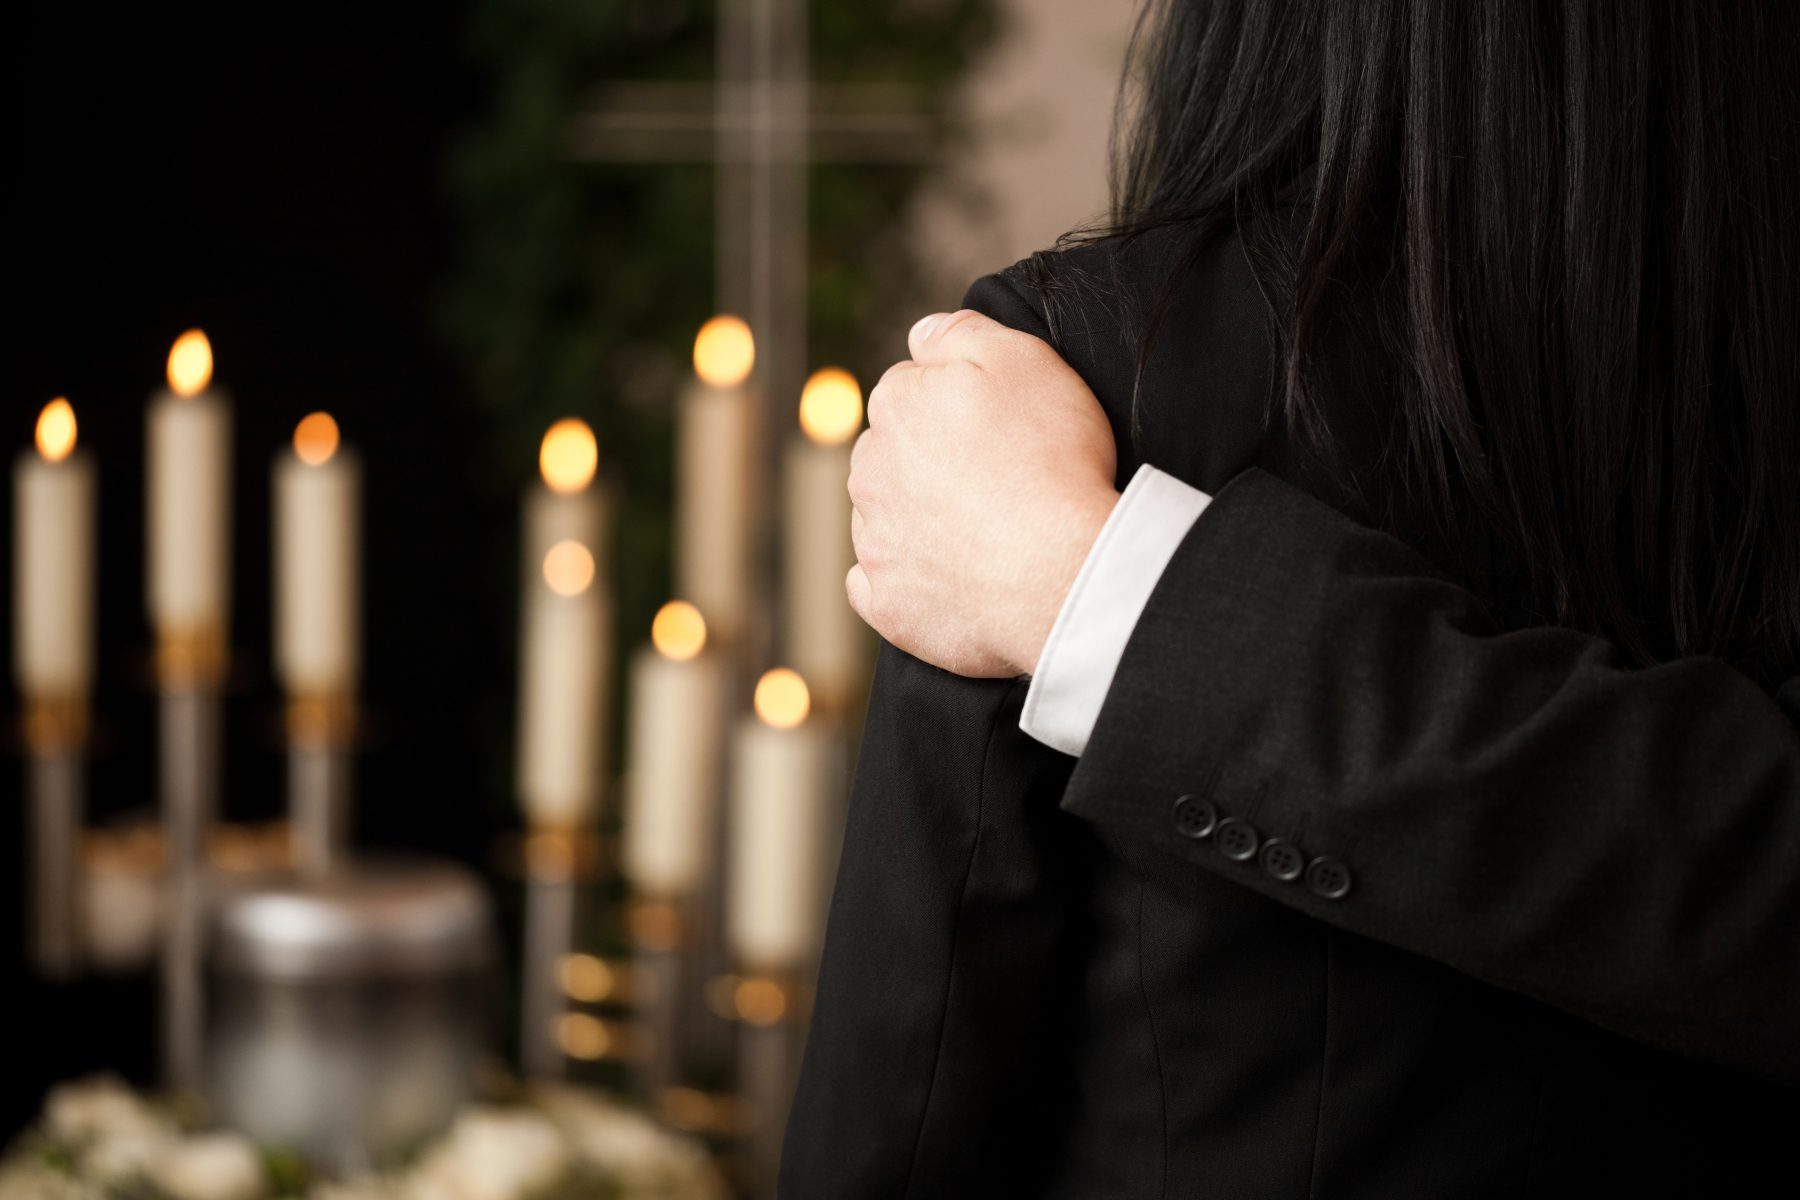 cemetery and funeral services: do you know your rights? - consumer